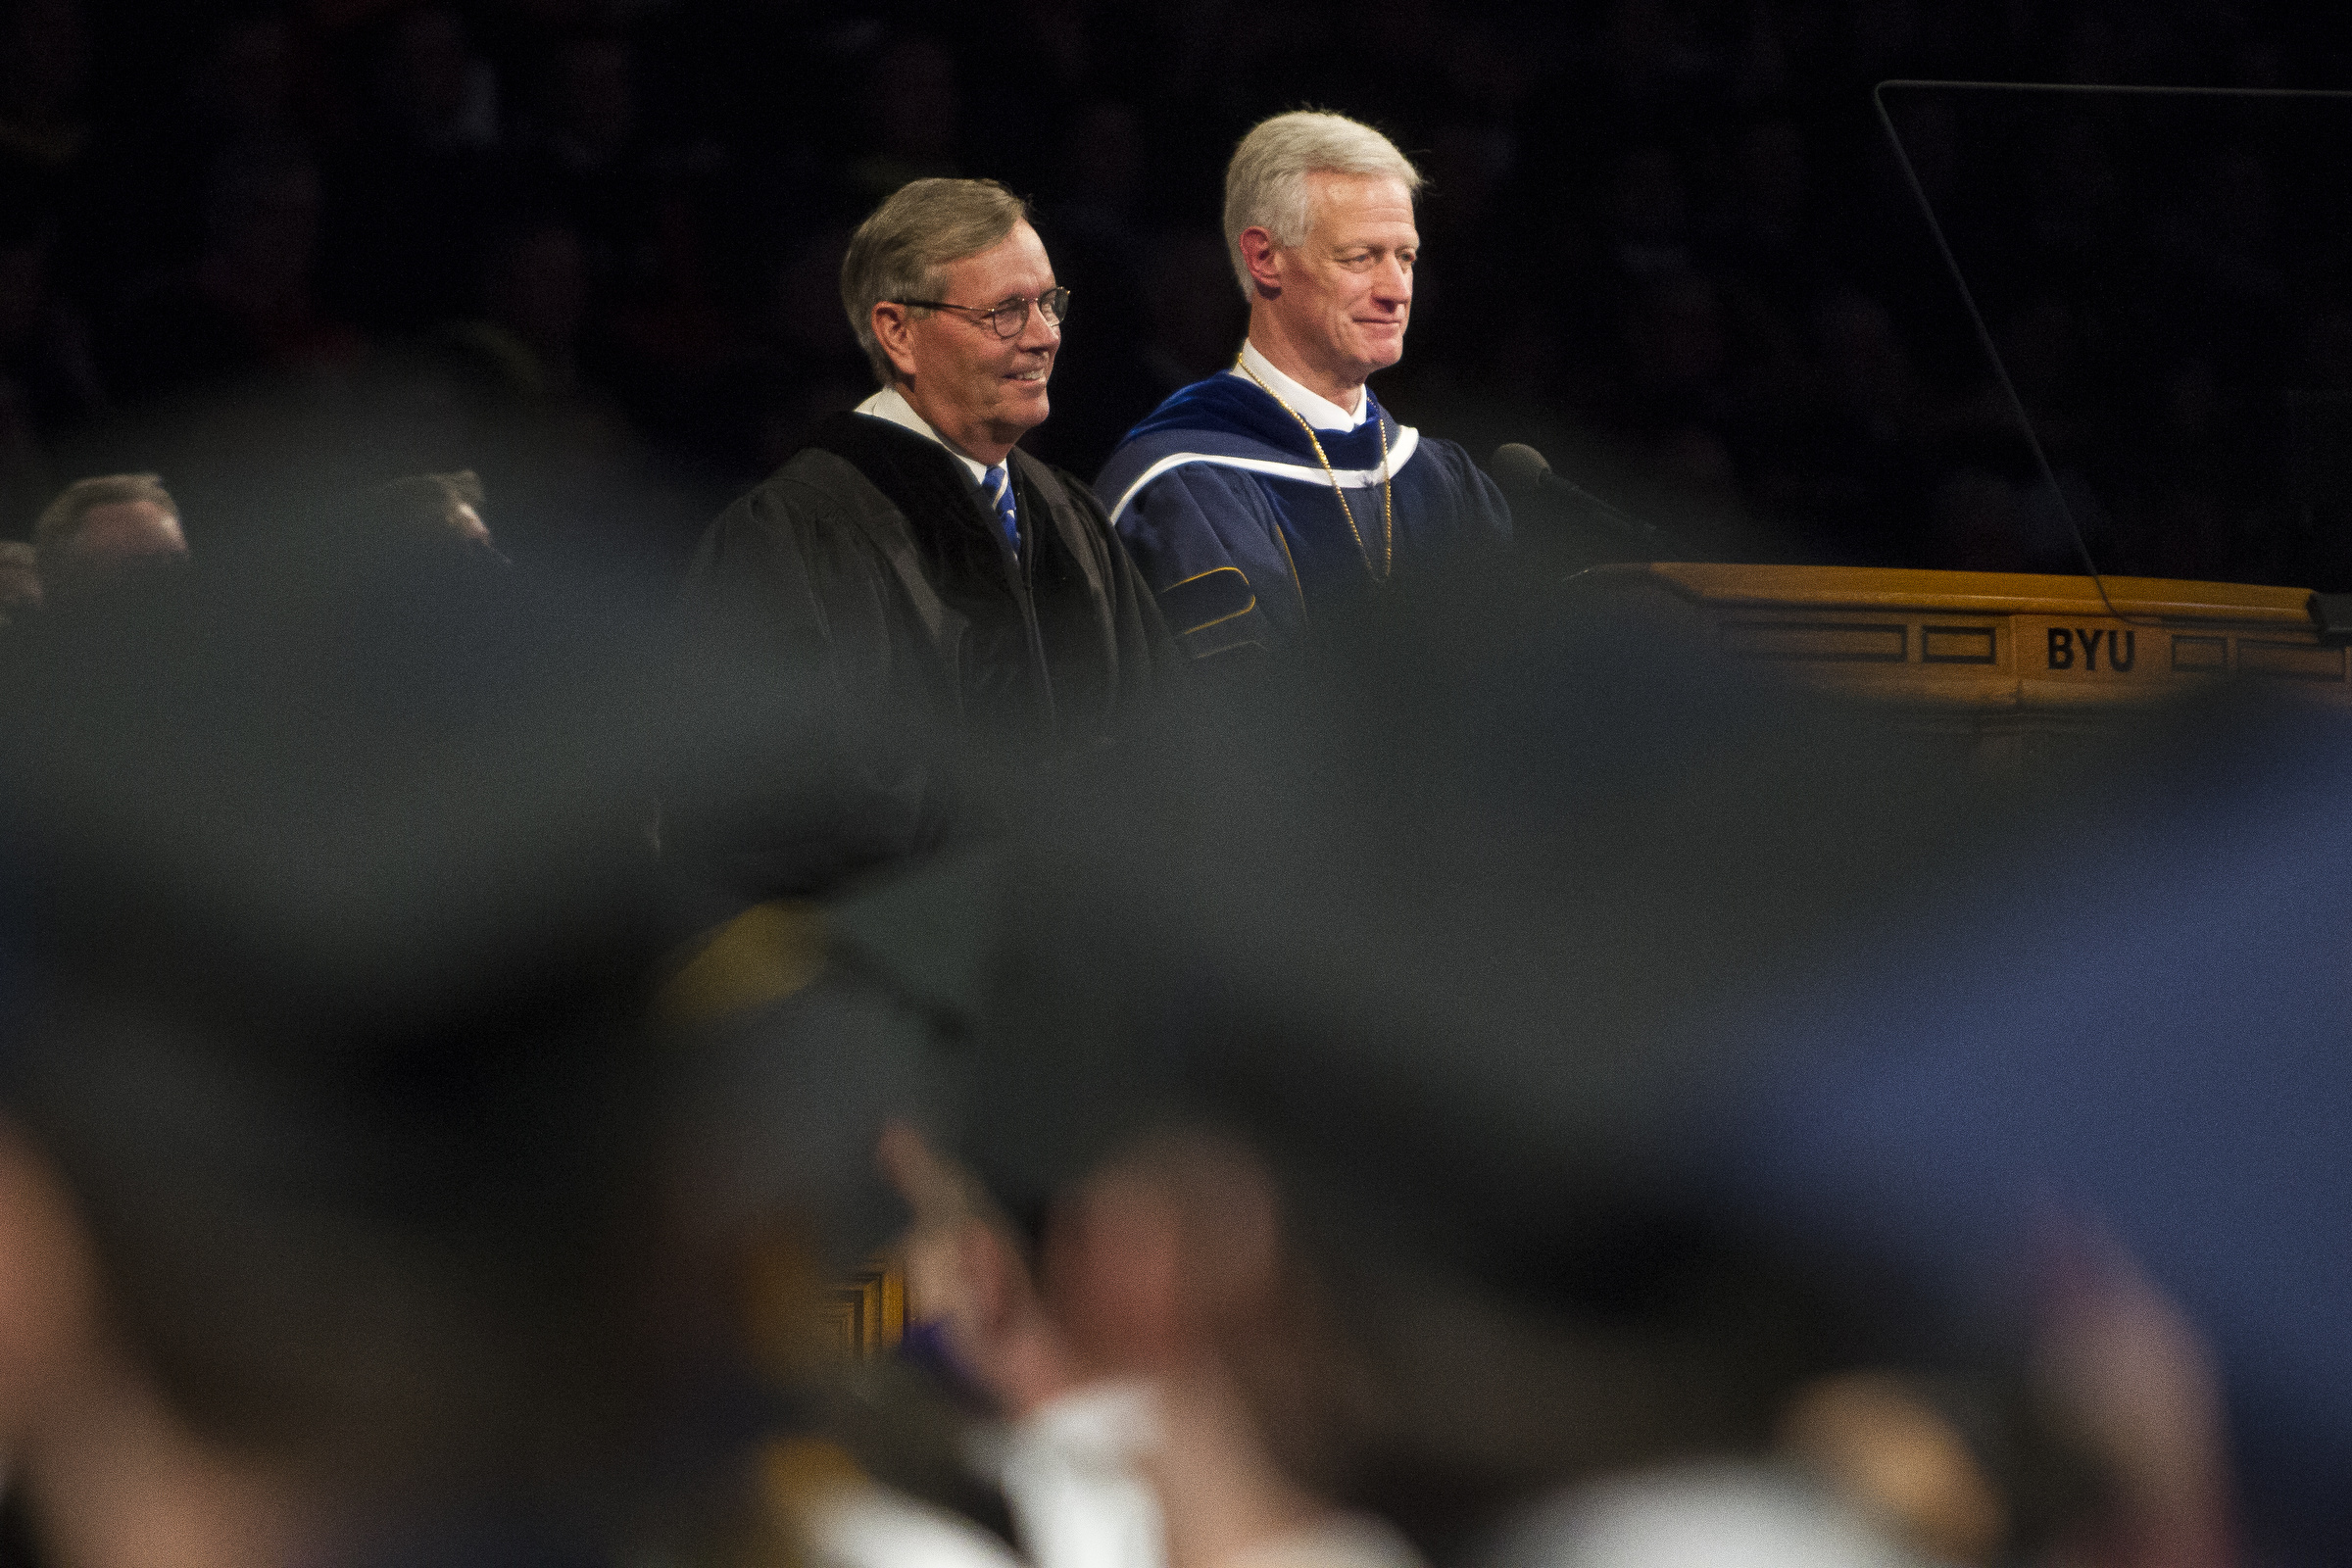 Former Utah Governor Mike Leavitt smiles next to BYU President Kevin Worthen while Leavitt is recognized with an honorary degree during Brigham Young University's commencement ceremony at the Marriott Center on Thursday, April 26, 2018, in Provo. BYU is awarding nearly 6,300 degrees to graduates this week.